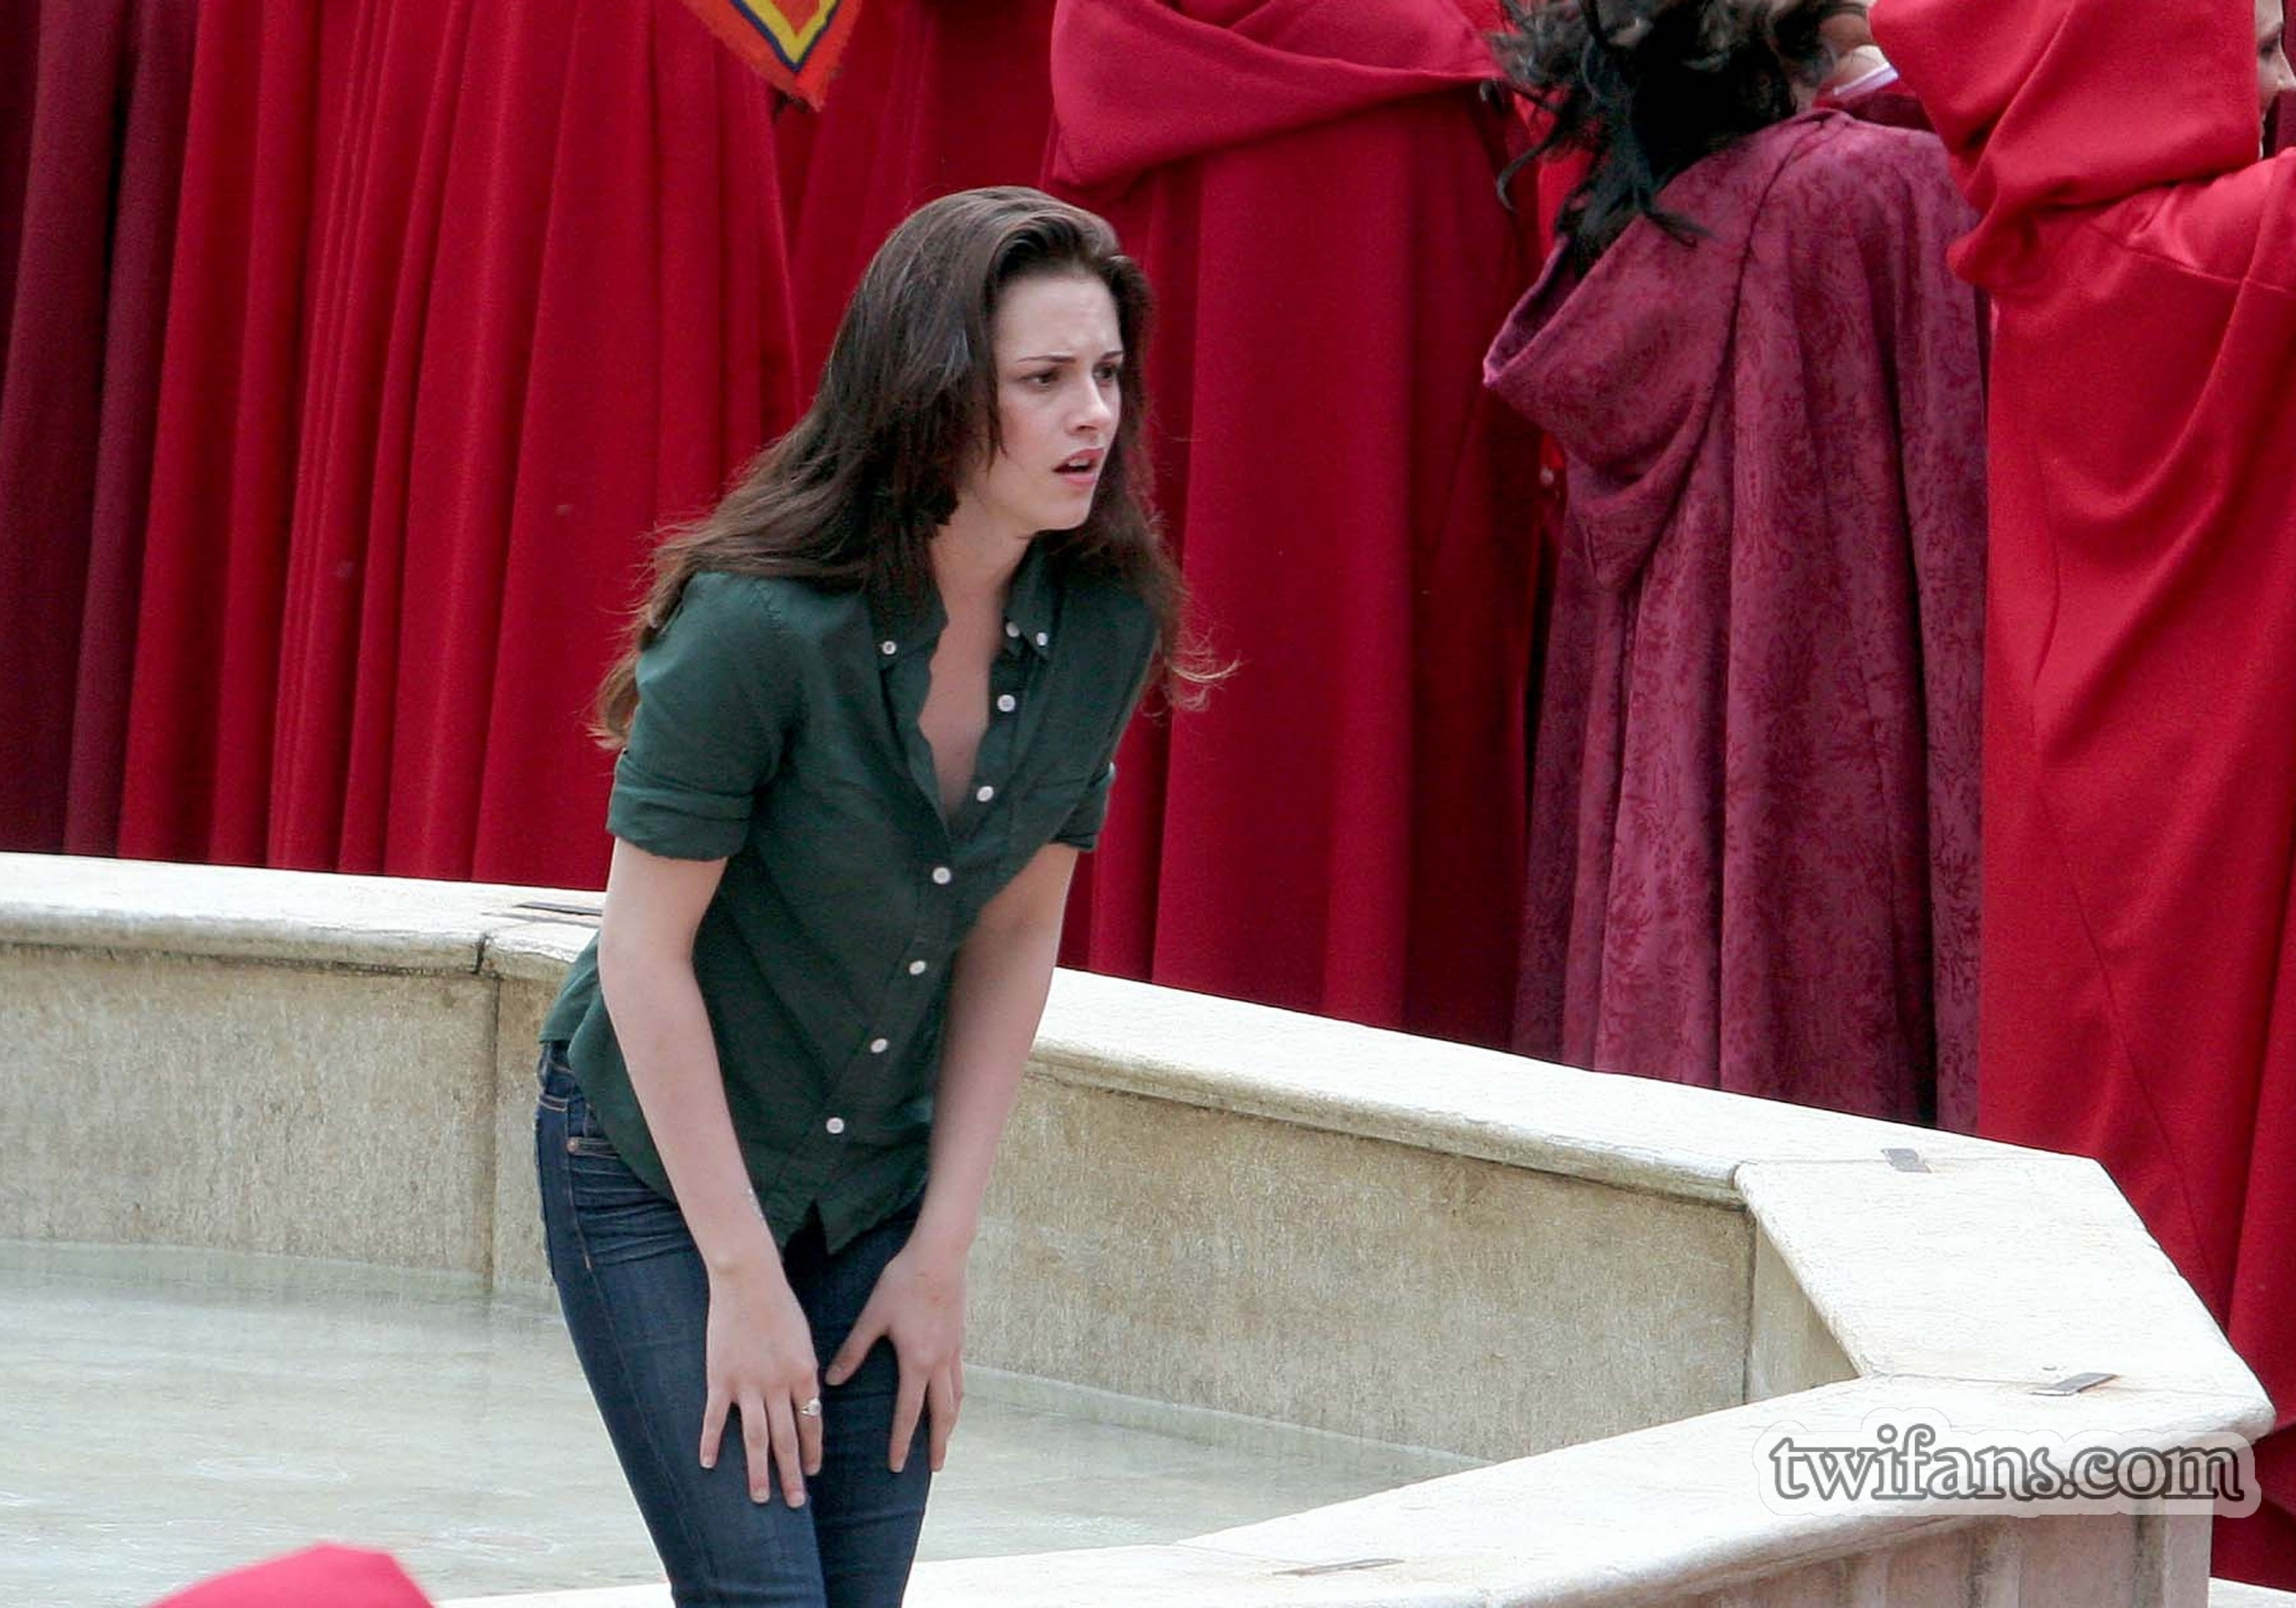 http://images2.fanpop.com/images/photos/6400000/on-set-twilight-series-6431820-2560-1793.jpg